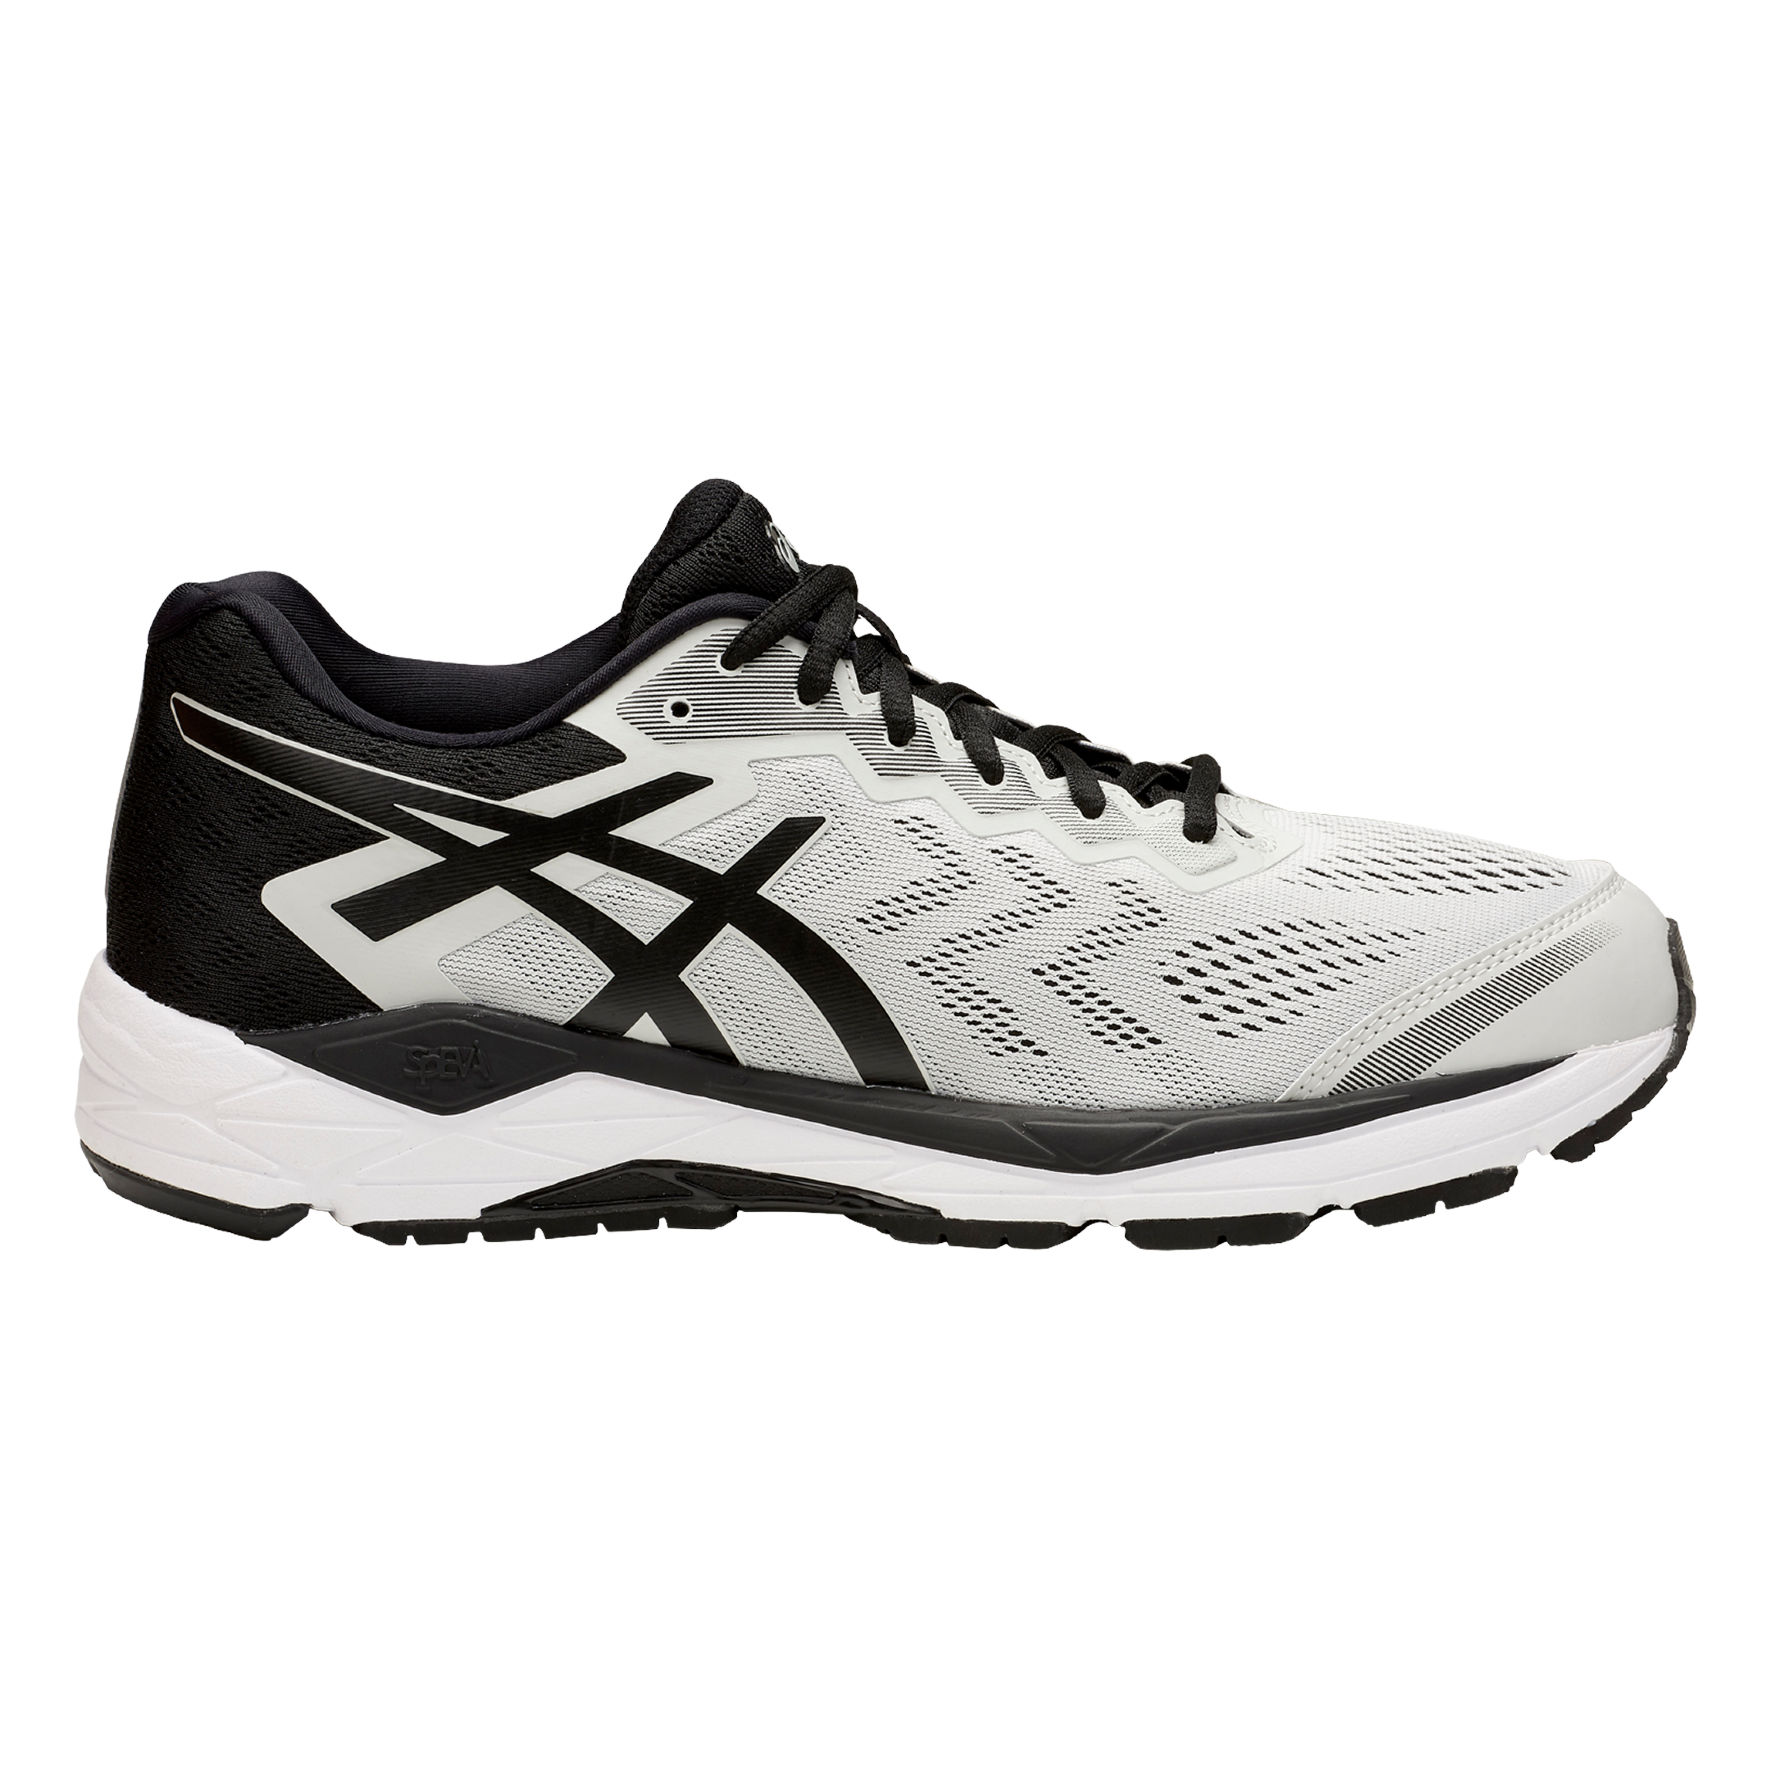 Asics Gel Fortitude 8 2E in Grau